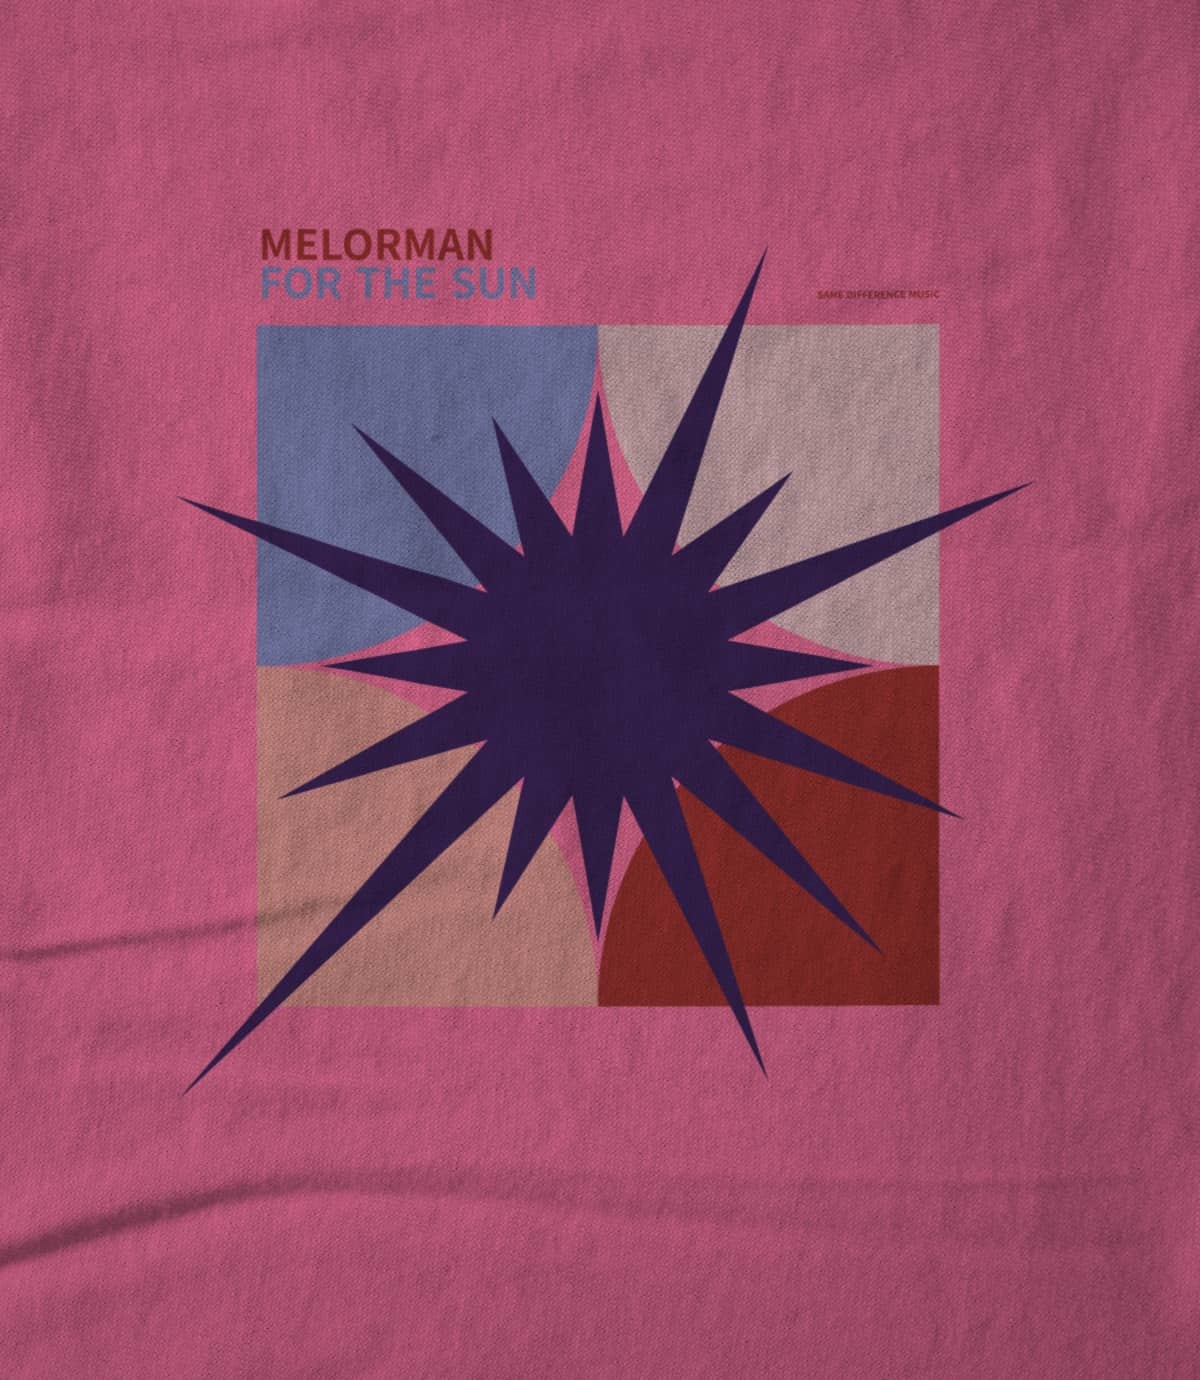 Melorman for the sun pink blueberry sun 1592831246